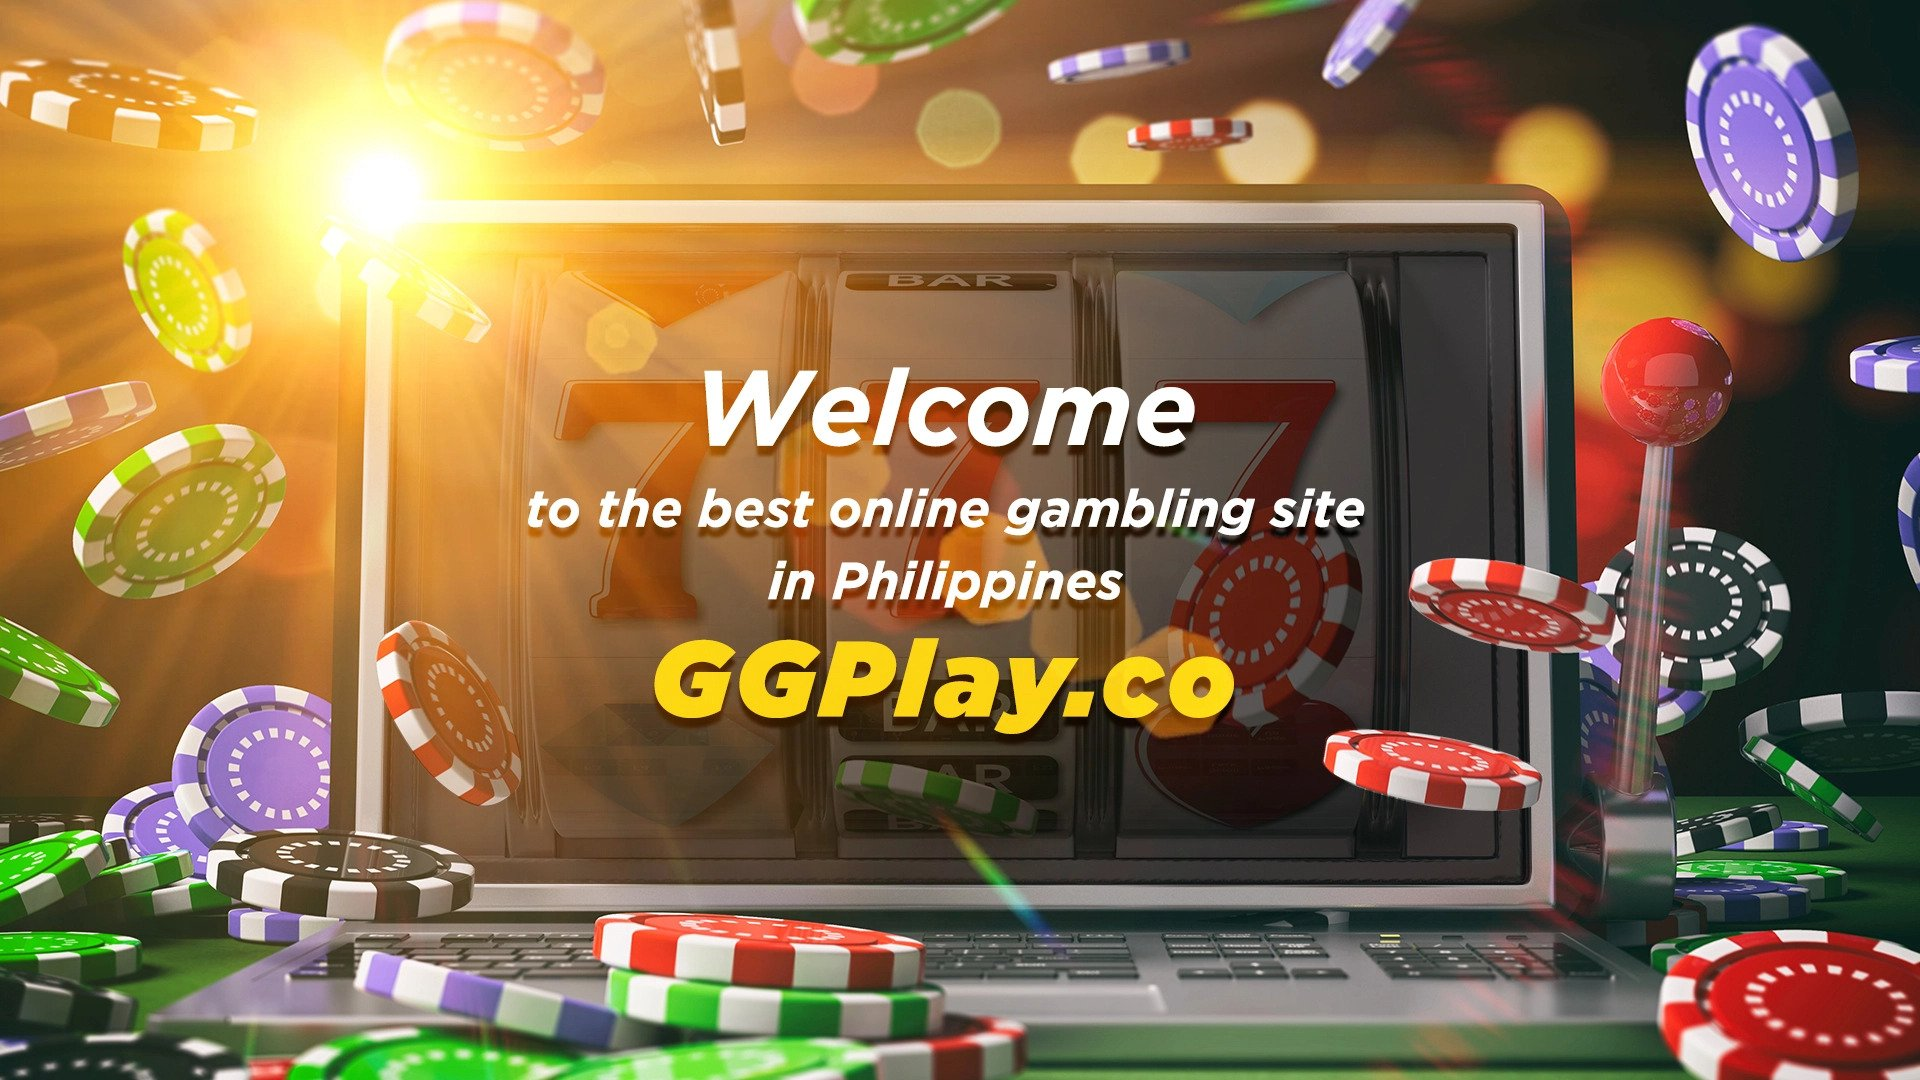 Can You Make a Living at Online Casino GGPlay?